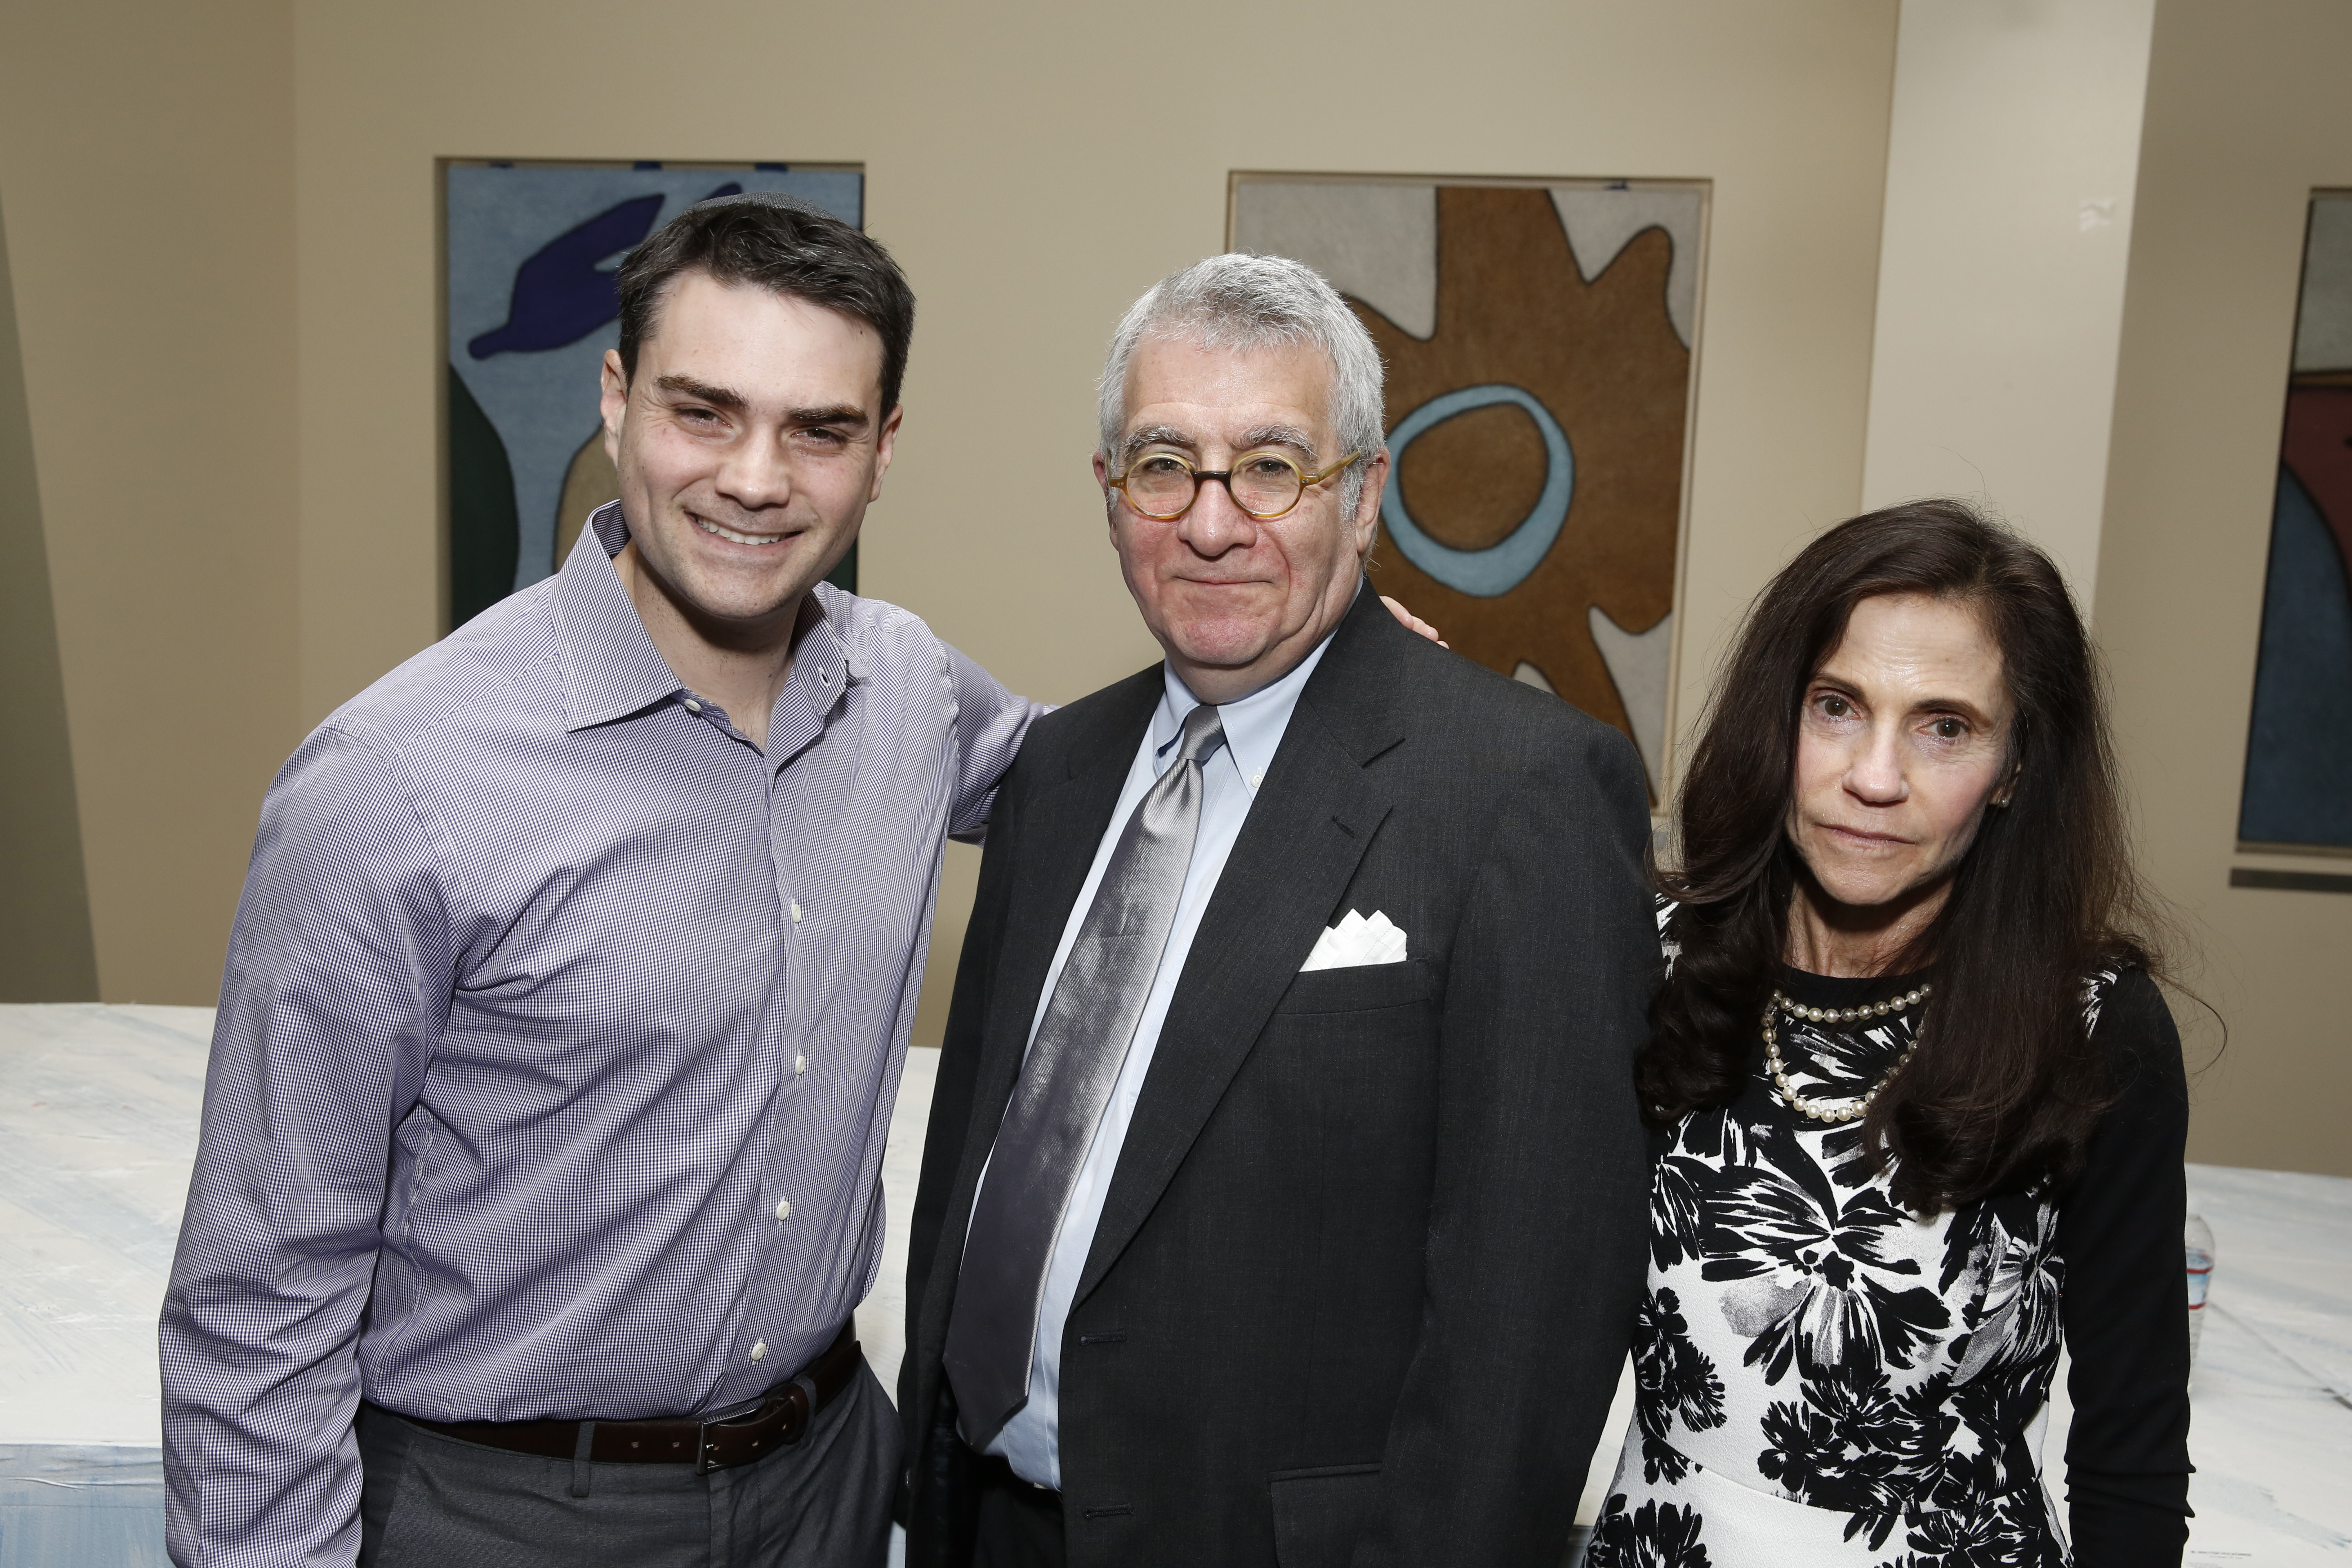 Ben Shapiro Dazzles at Ariel Avrech Memorial Lecture